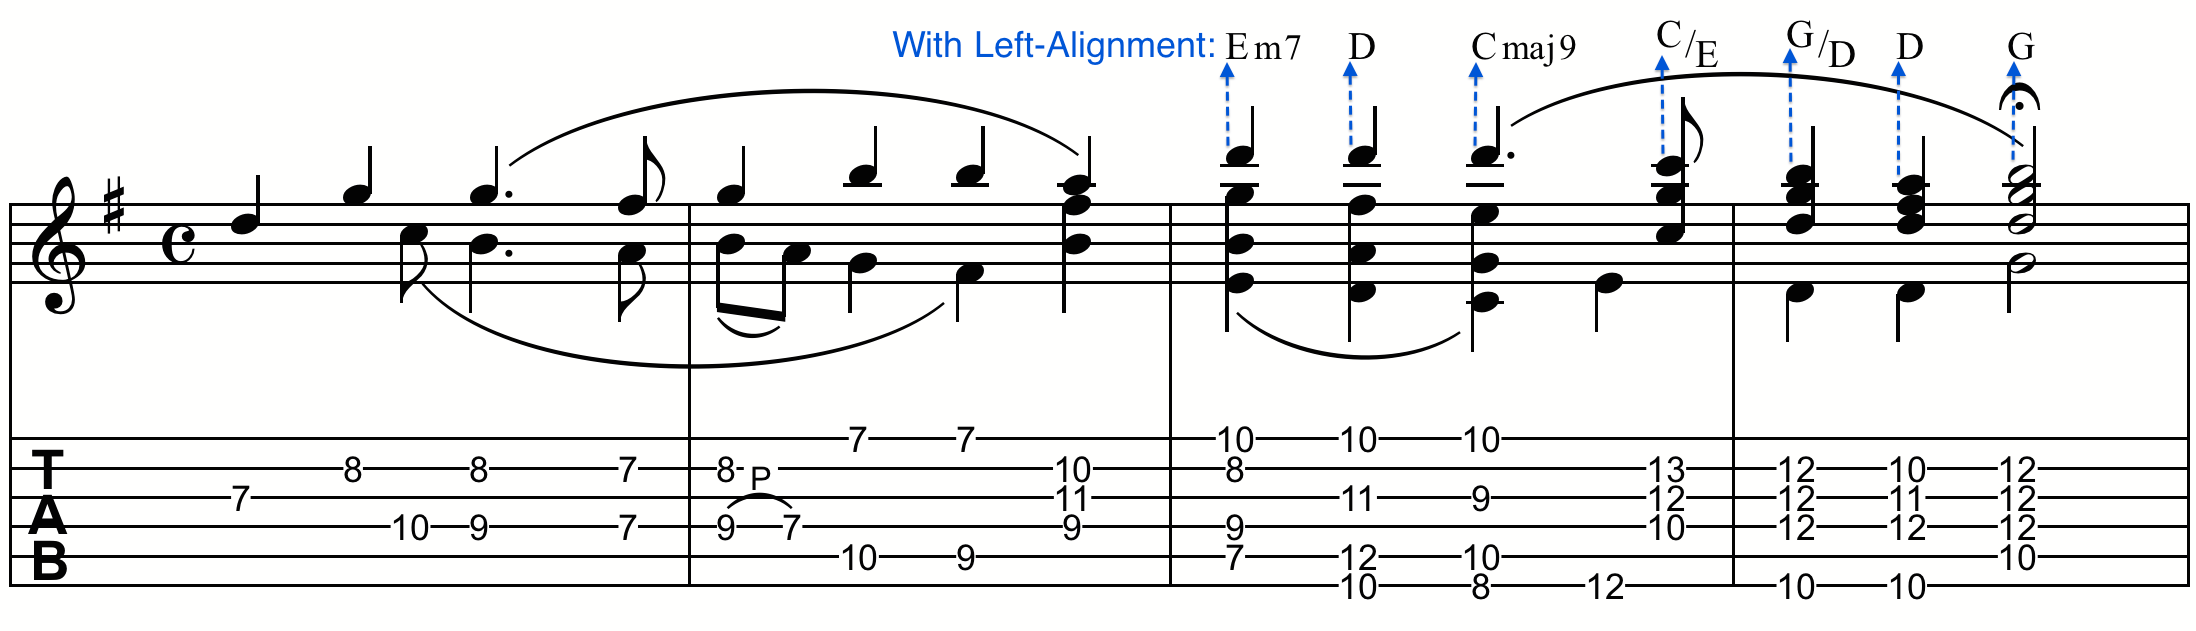 Chord Positioning And Alignment Finale